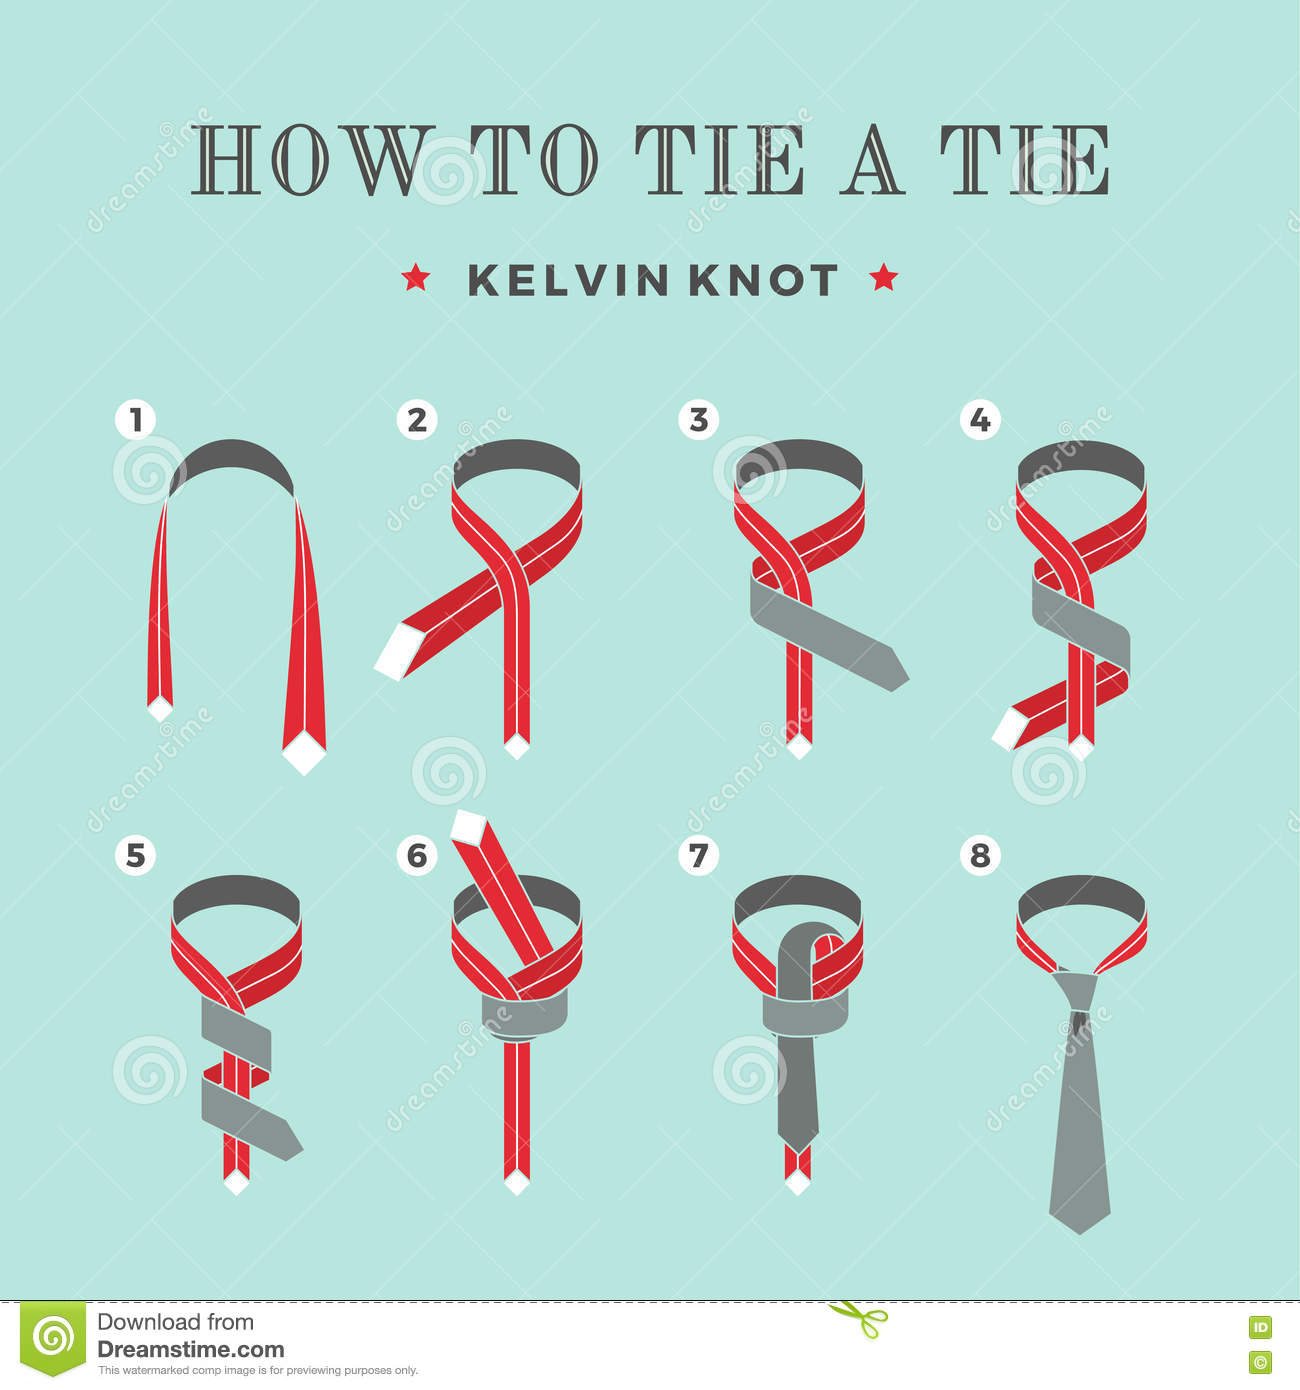 Knot Instructions Instructions On How To Tie A Tie On The Turquoise  Background Of The